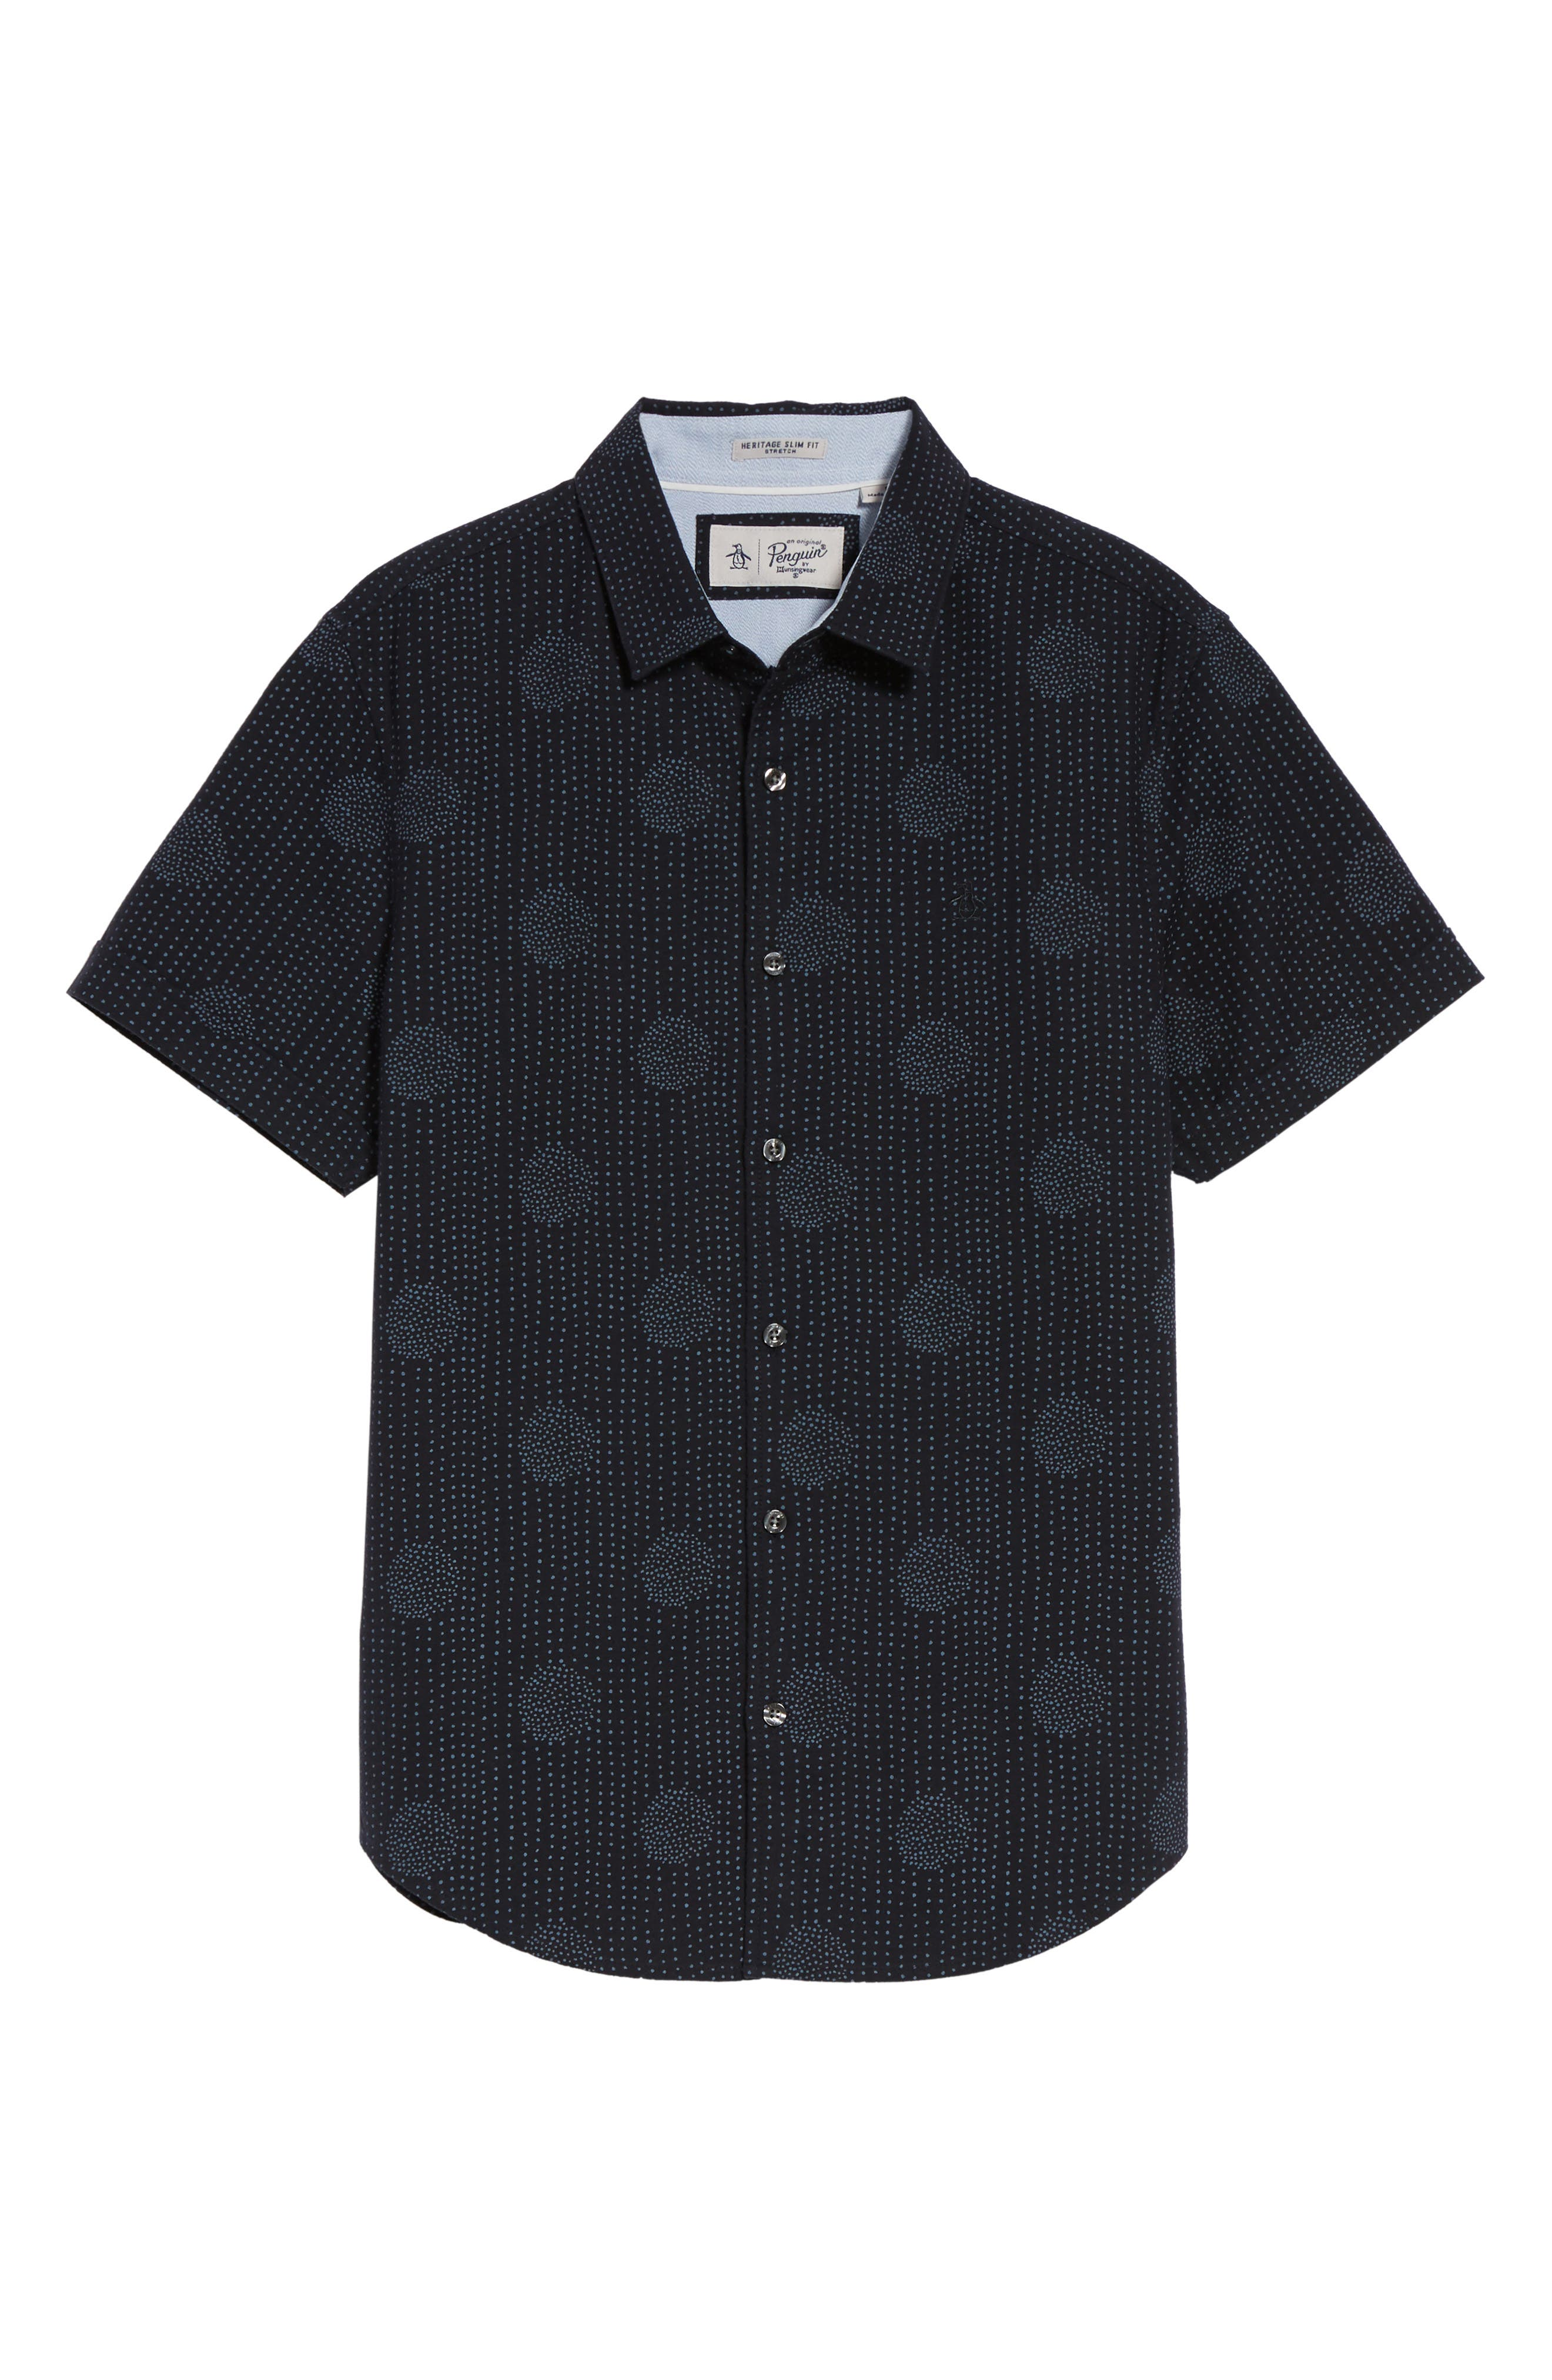 Heritage Slim Fit Dot Print Shirt,                             Alternate thumbnail 6, color,                             413